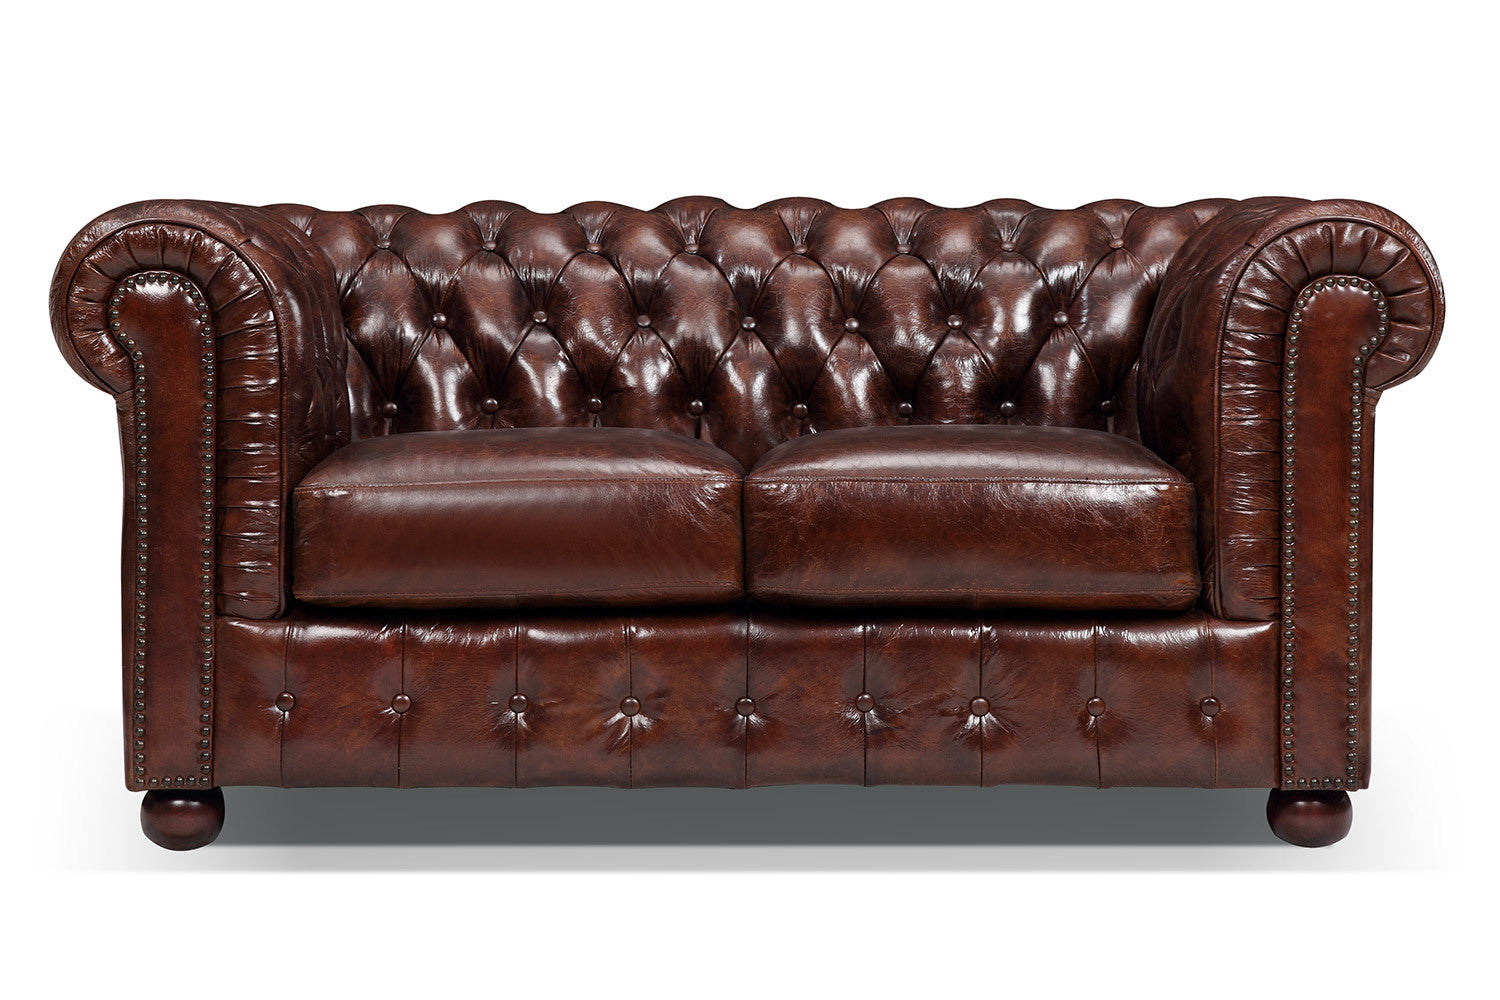 Canap chesterfield original 2 places rose moore - Canape chesterfield but ...